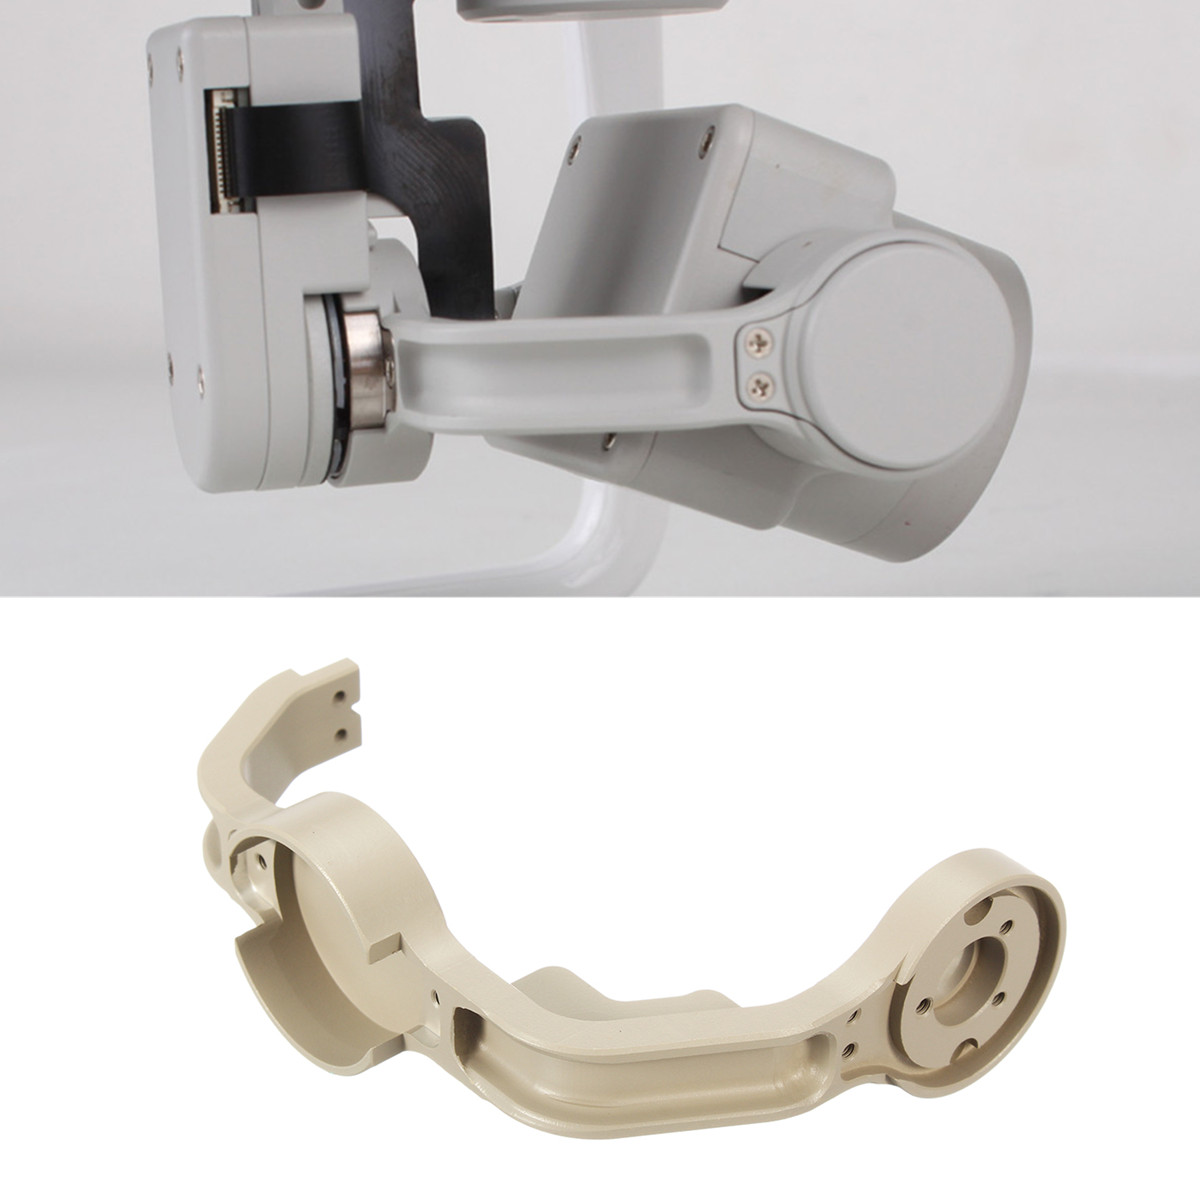 Original Gimbal Roll Arm Replacement Genuine OEM Part For DJI Phantom 4 Pro Camera Drone Gimbal Roll Arm